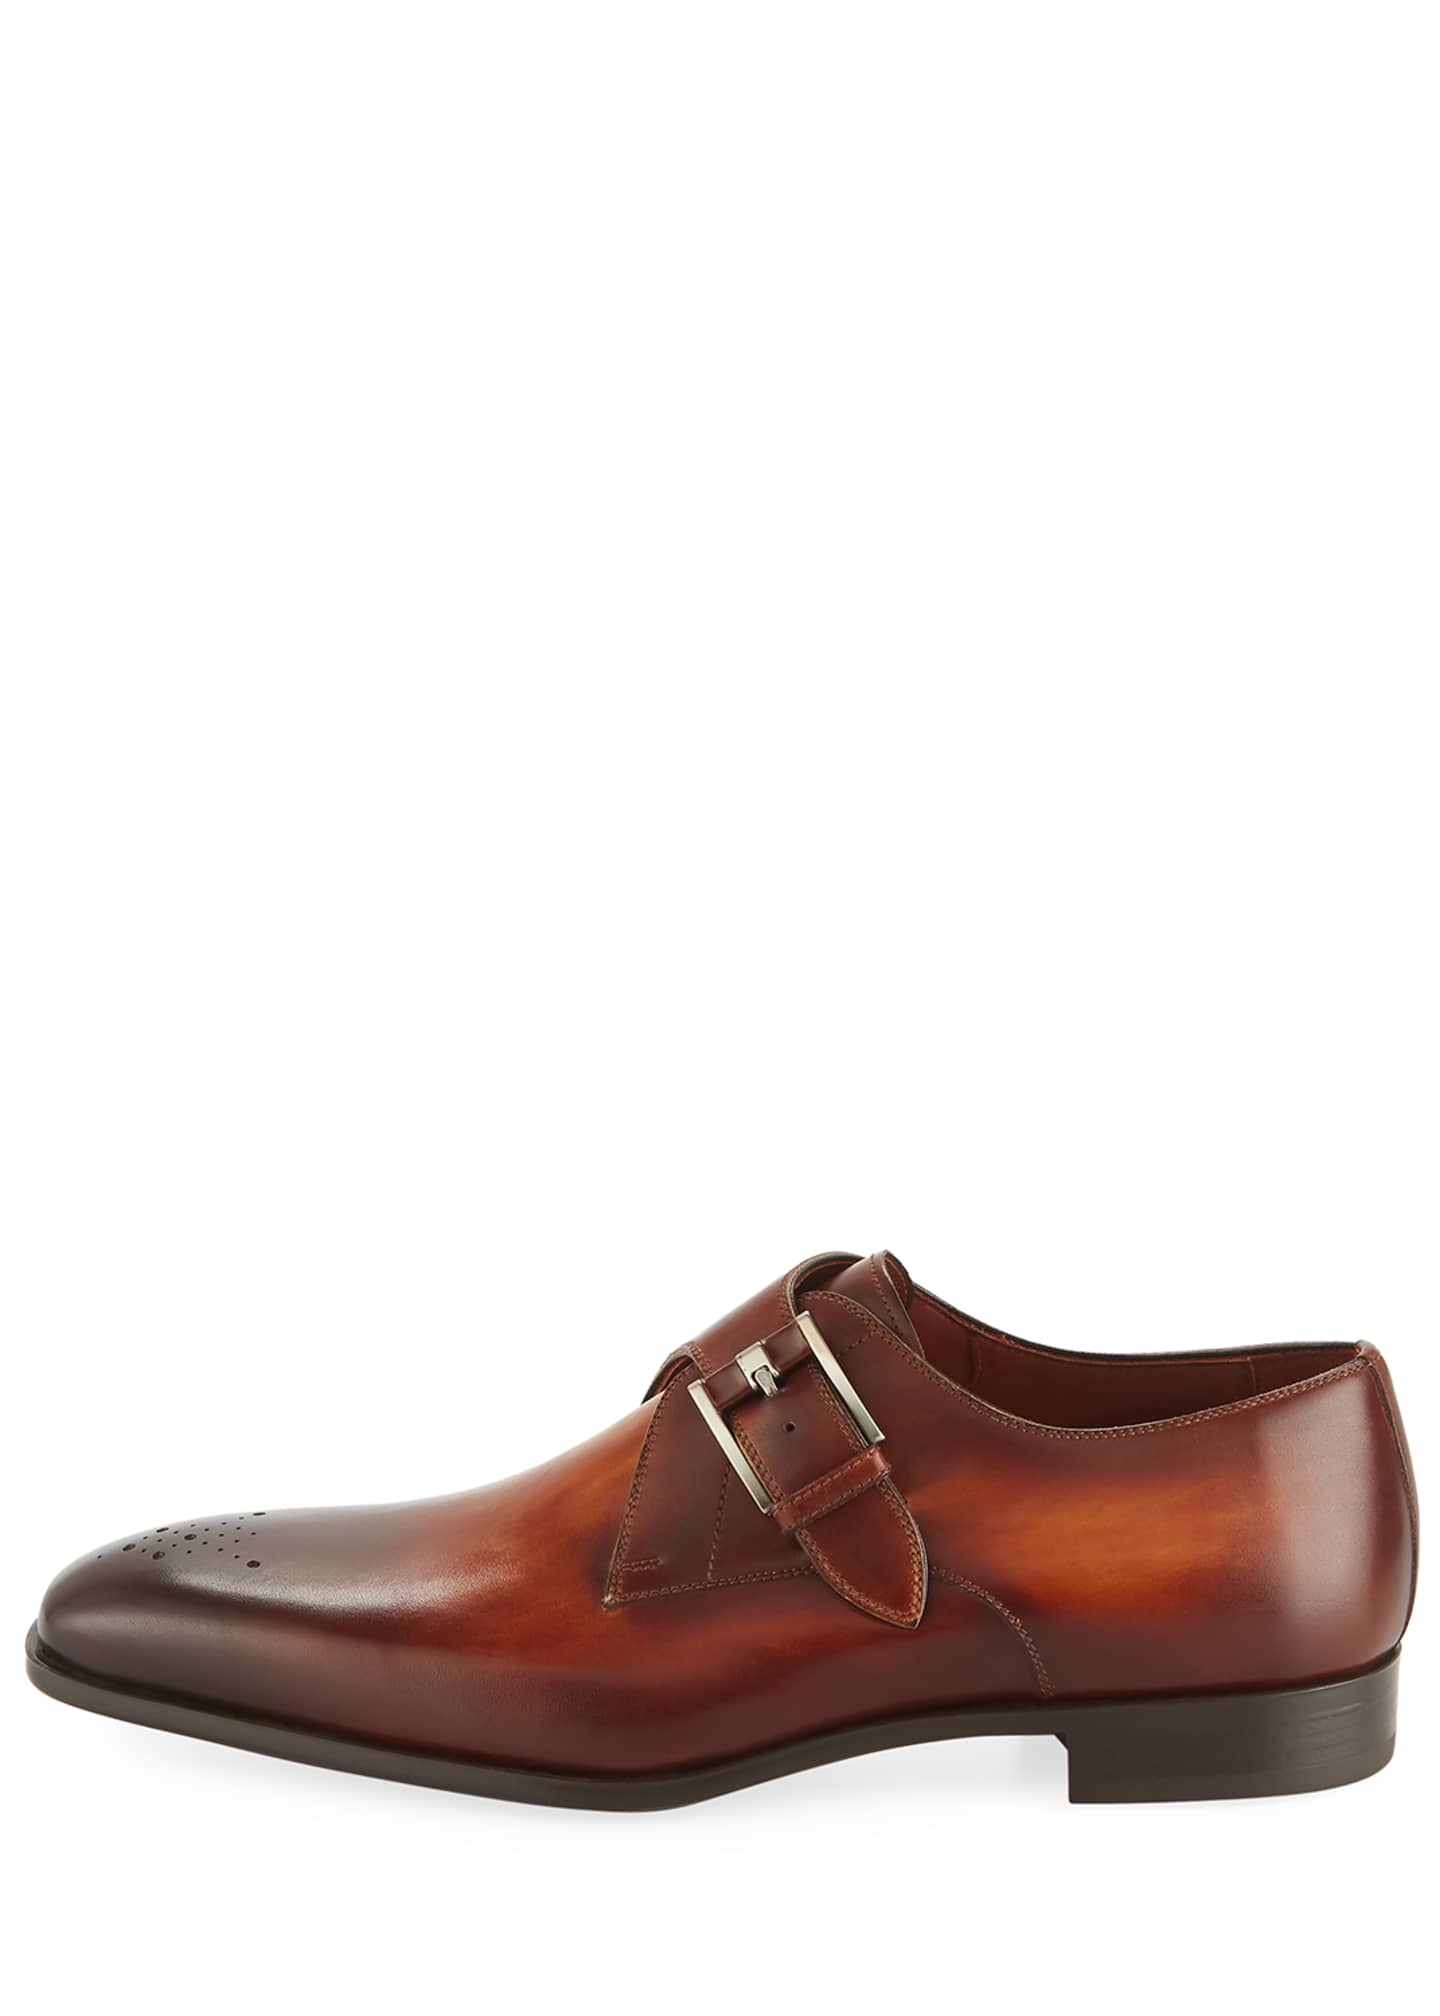 Image 3 of 3: Men's Single-Monk Leather Shoes